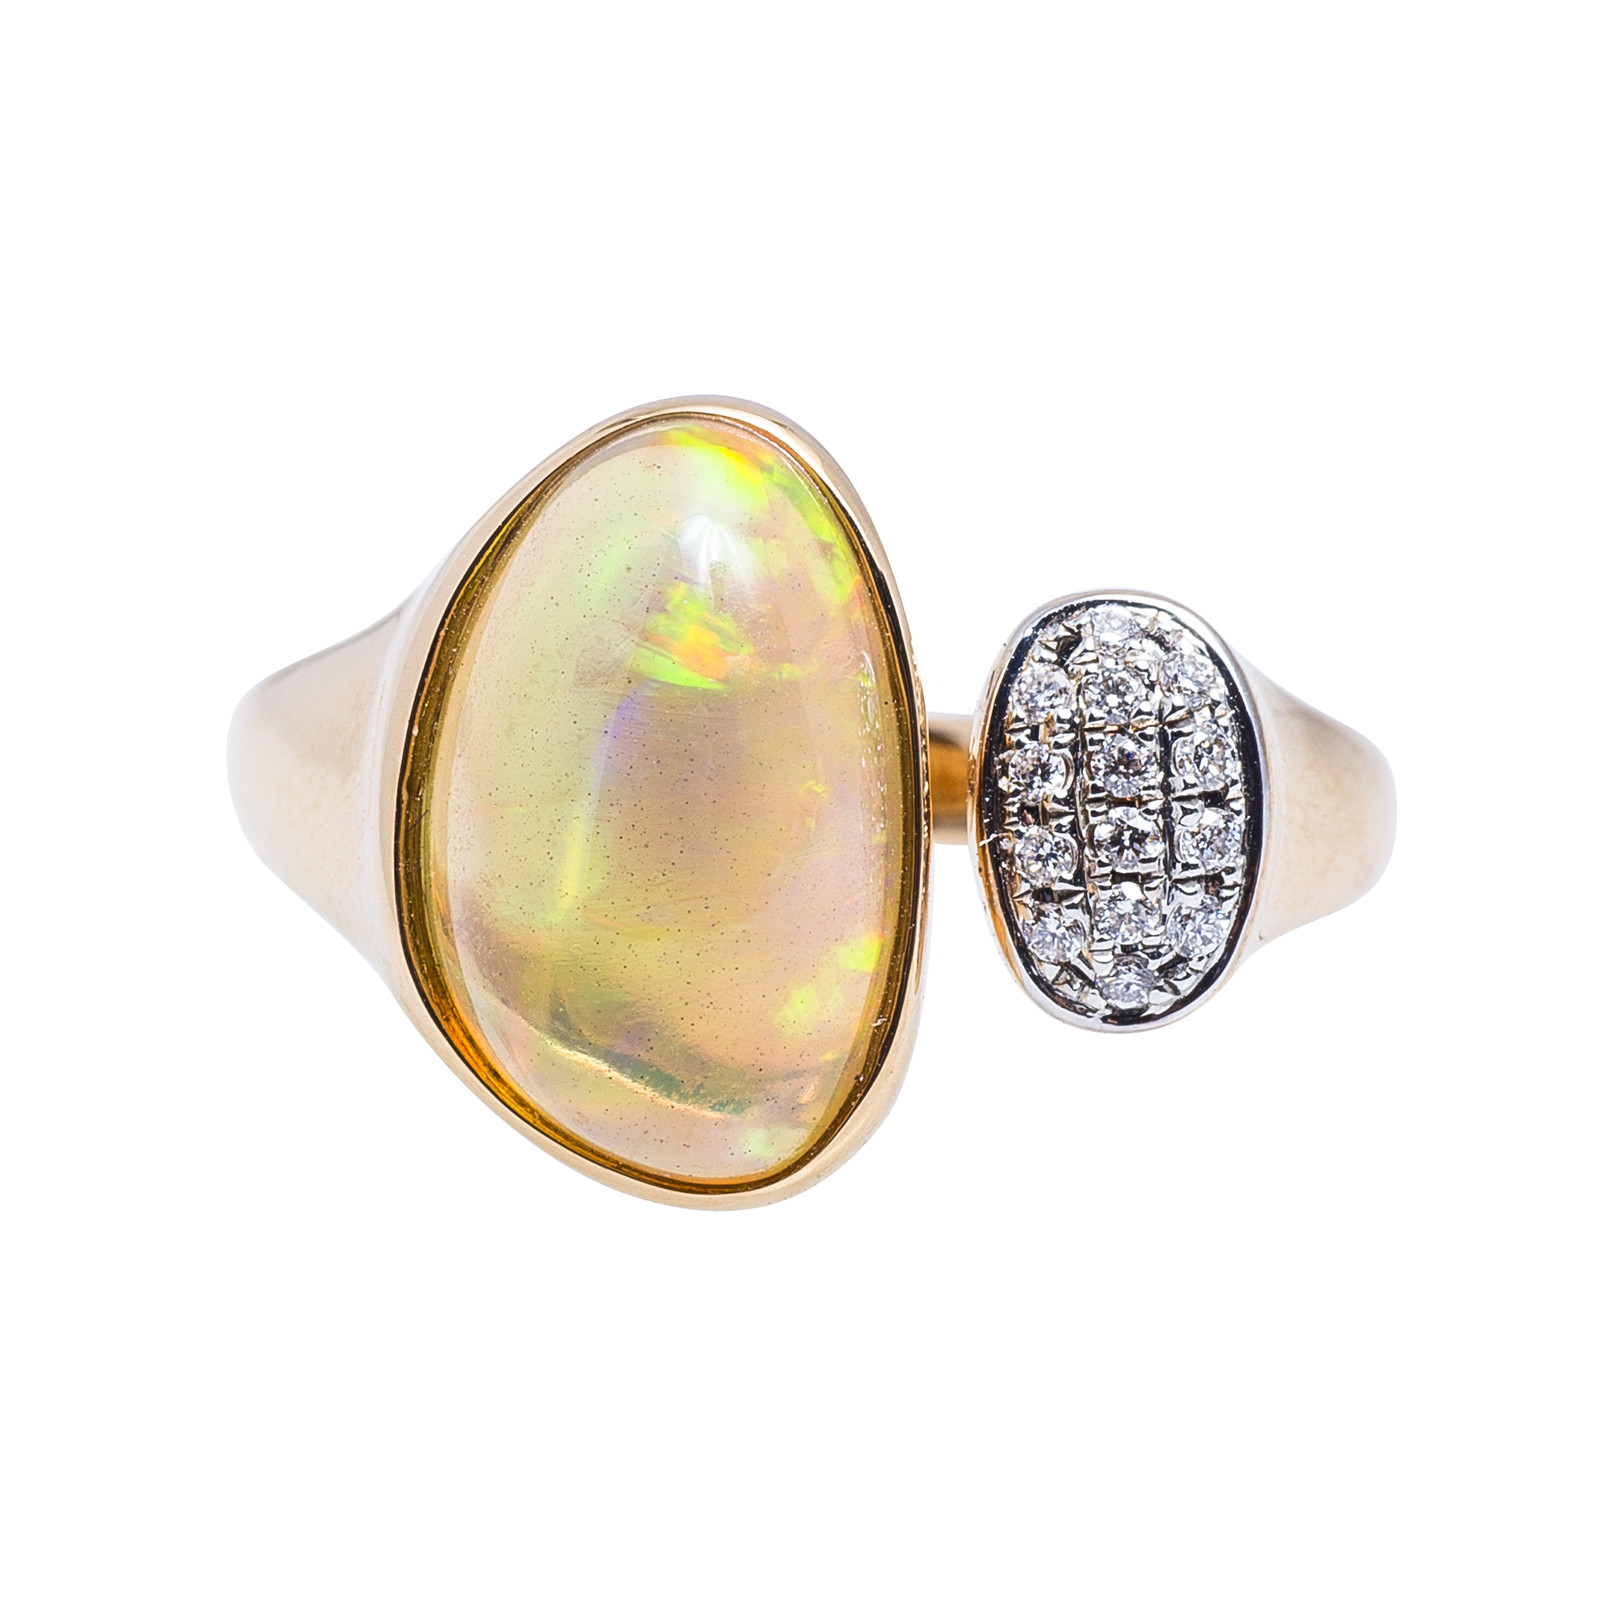 New 3.04 CTW Diamond and Opal Ring